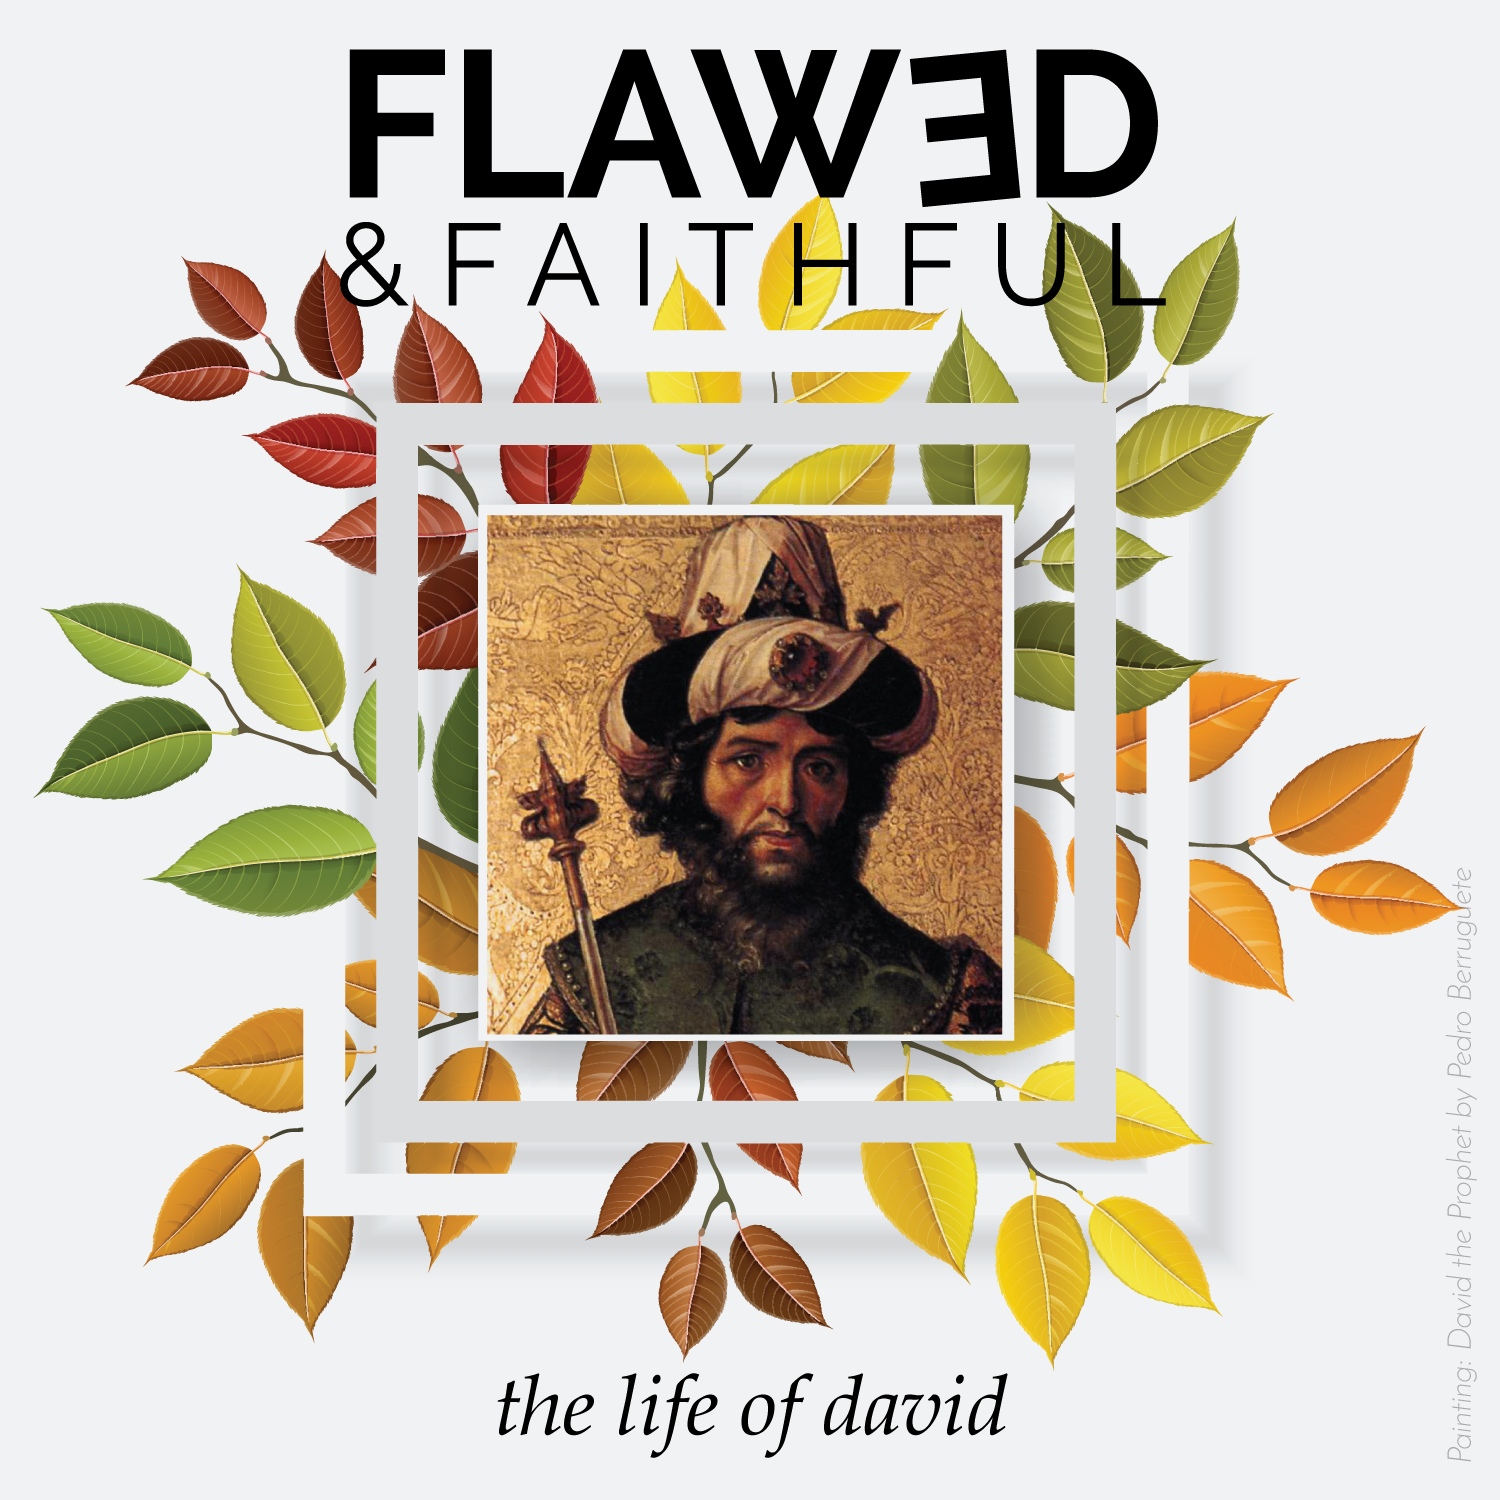 Flawed-and-Faithful-The-Life-of-David-2019-Square-w-text.png